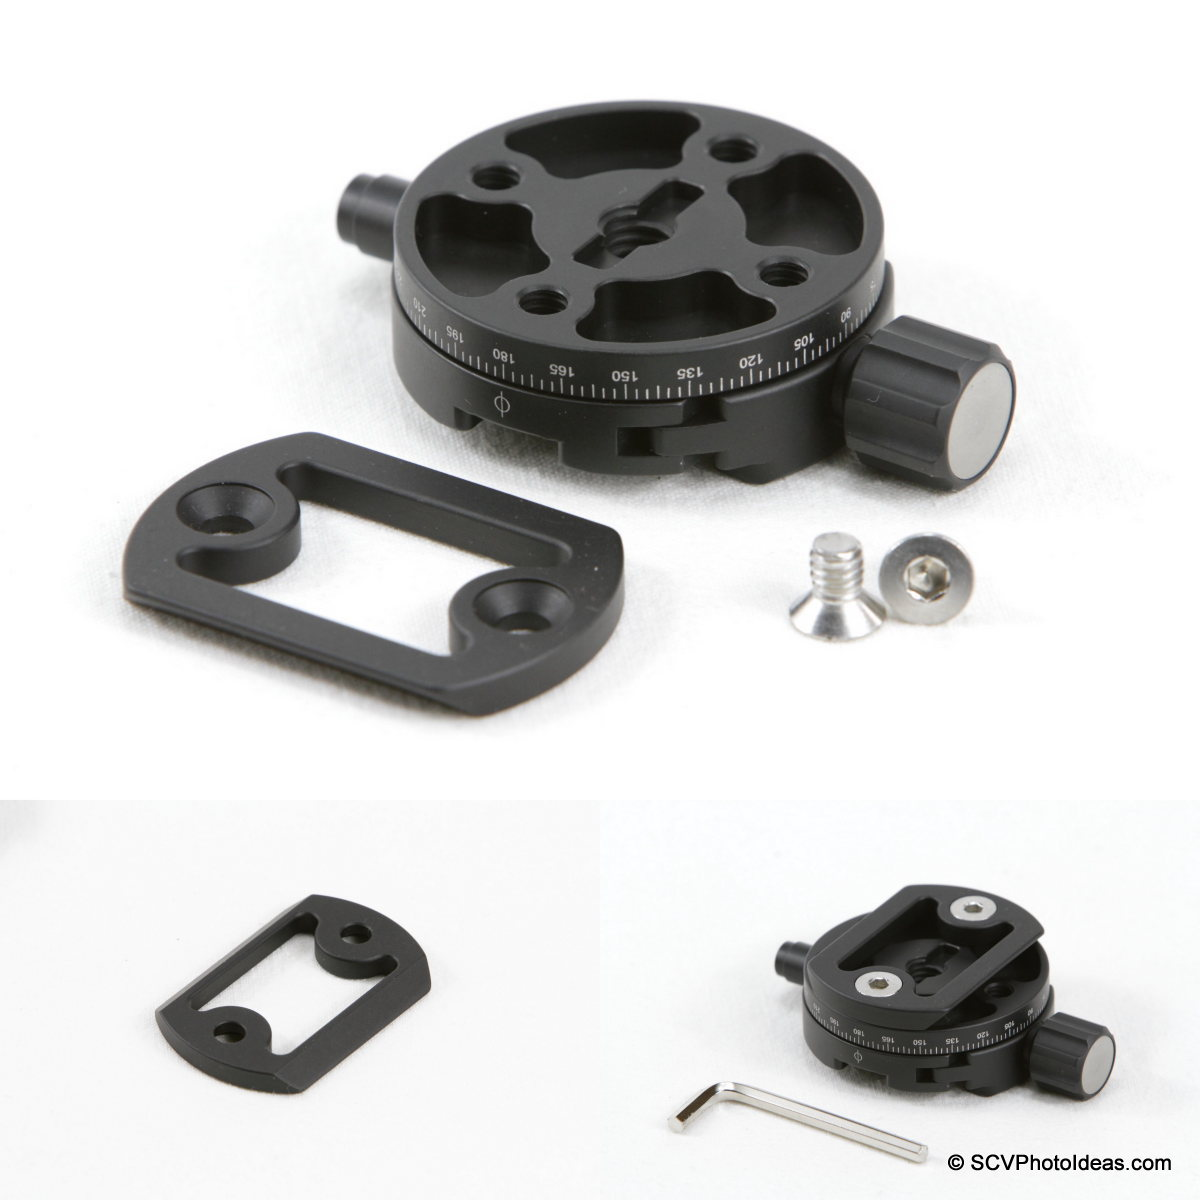 Sunwayfoto DDH-03 PC - AM-02 mounting sequence